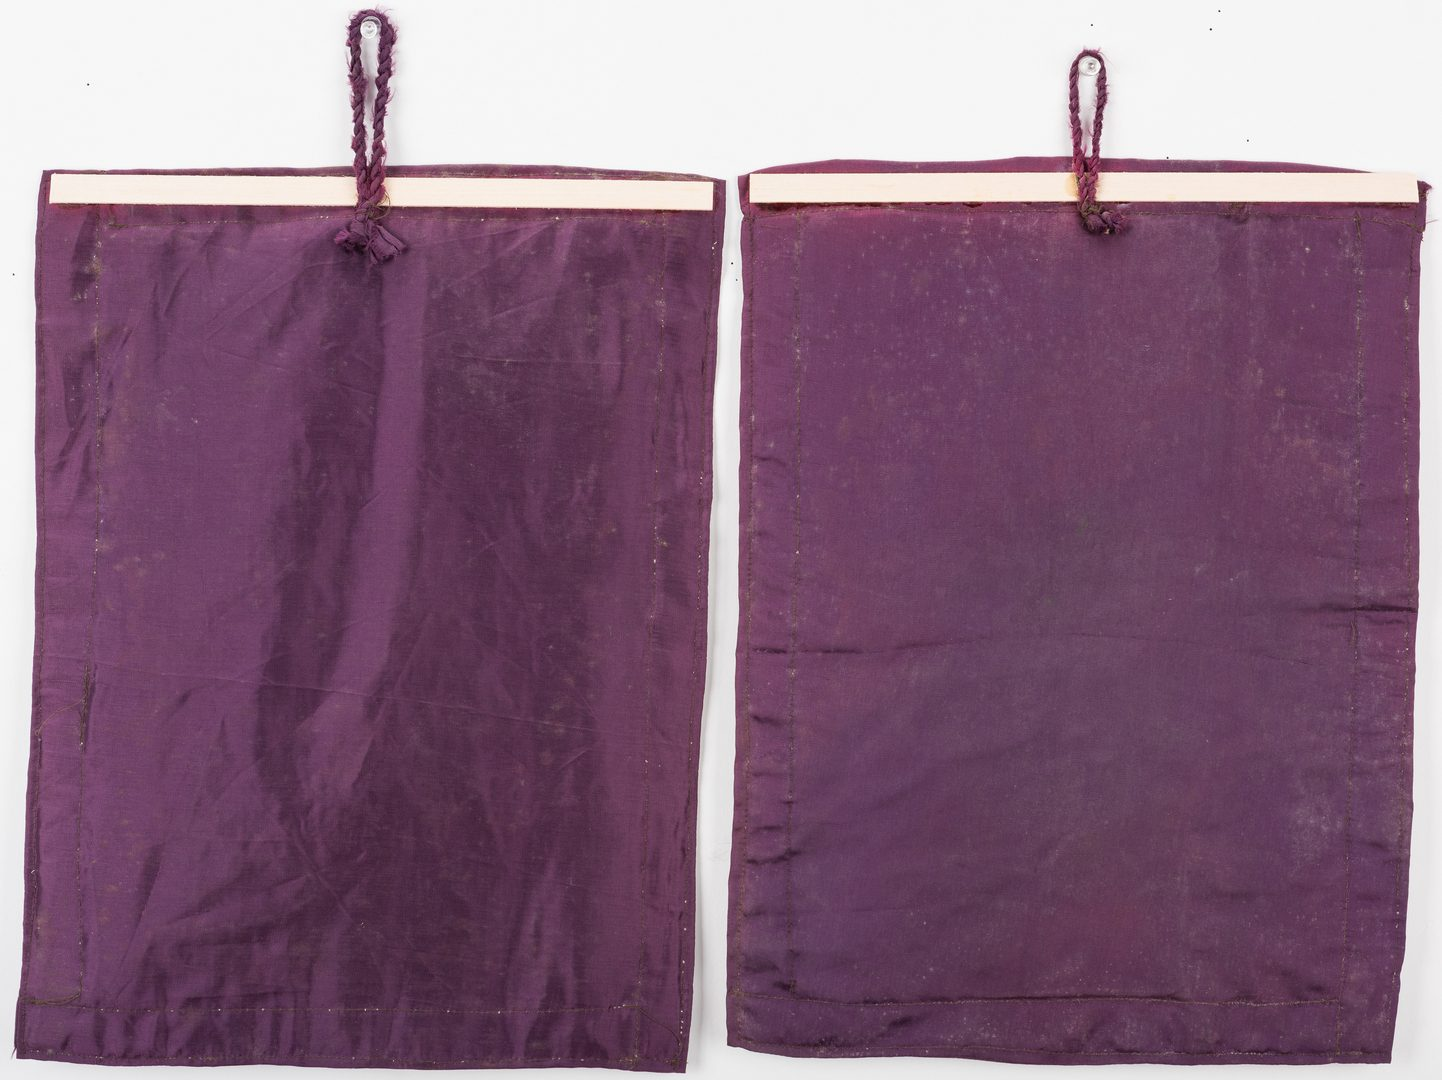 Lot 832: 2 Haitian Voo Doo flags